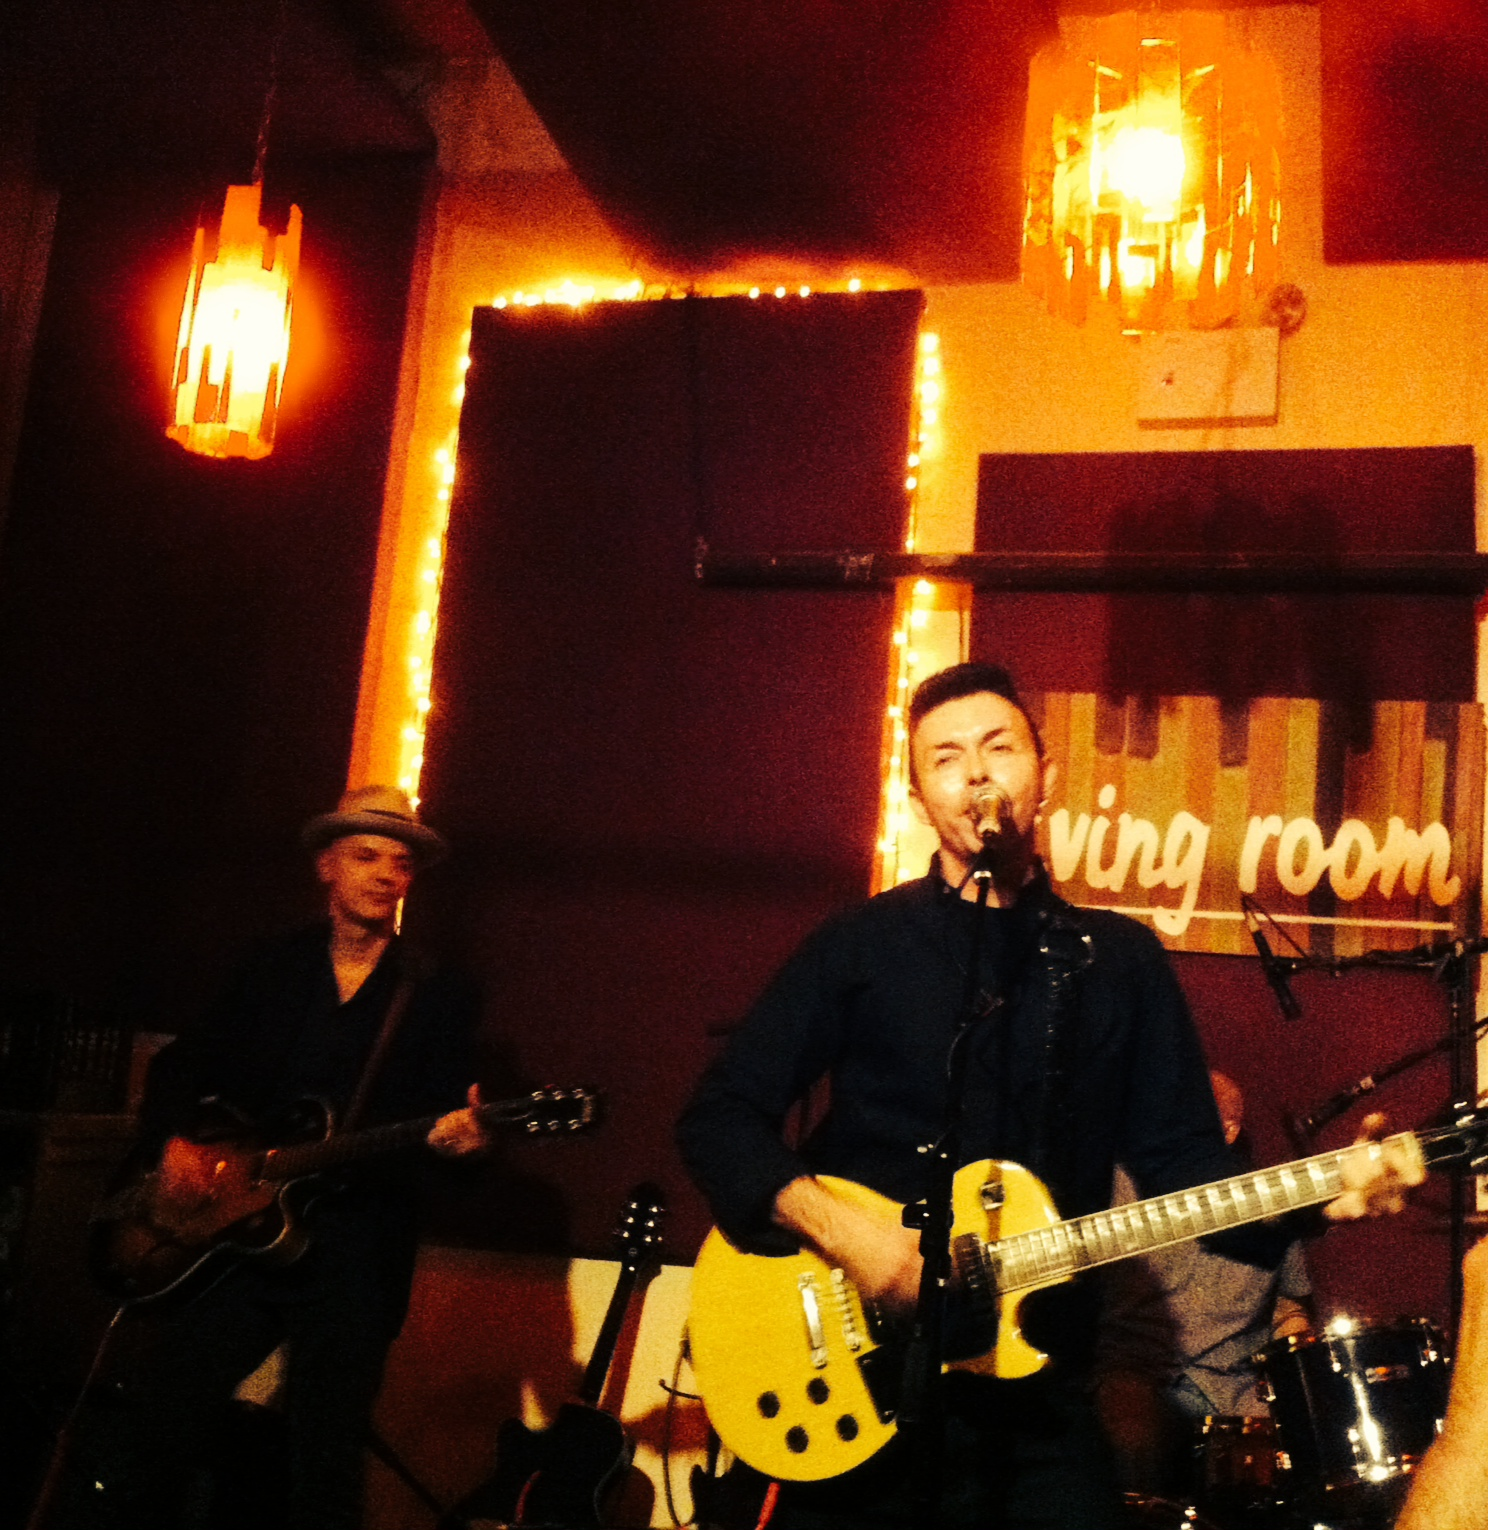 Concert Review: The Bongos, The Living Room, New York City